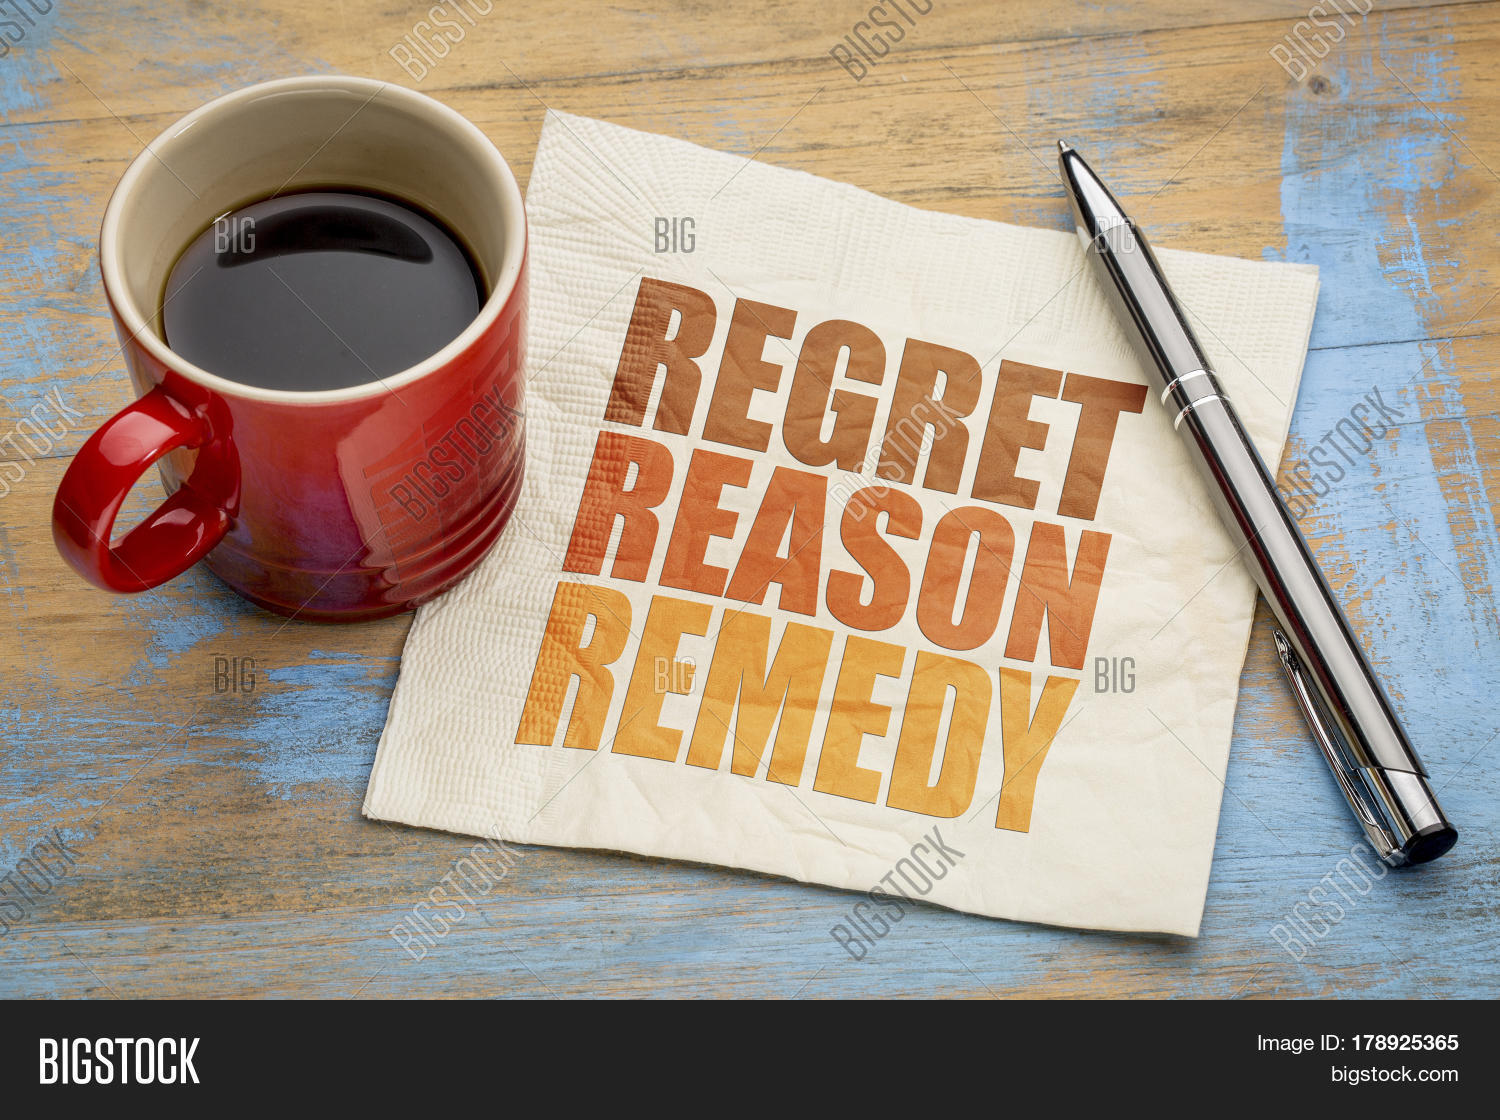 Regret, reason, remedy word abstract on a napkin with a cup of coffee - crisis management concept